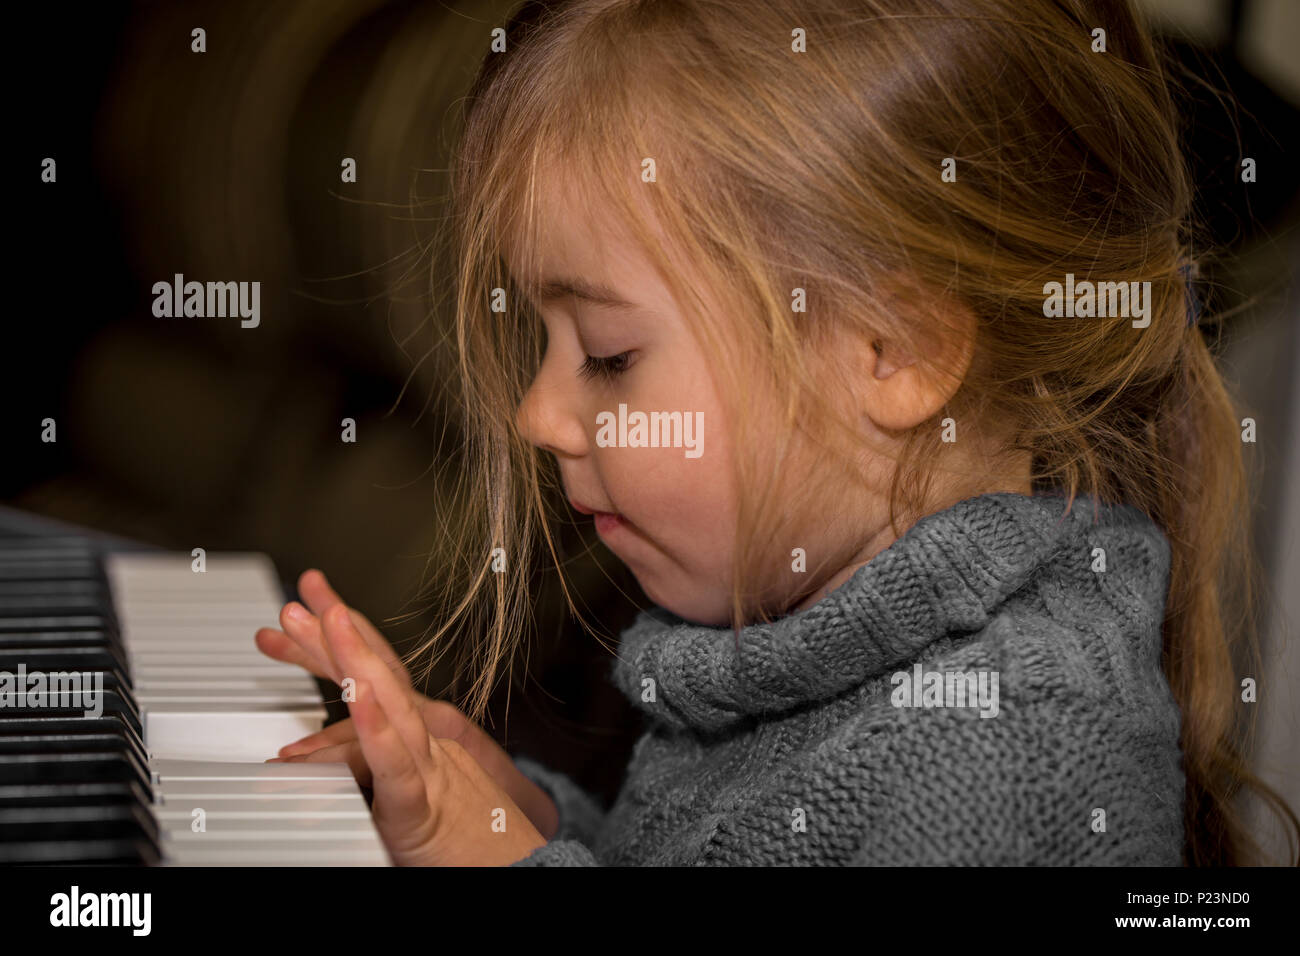 little girl playing on the keys of the piano, closeup - Stock Image